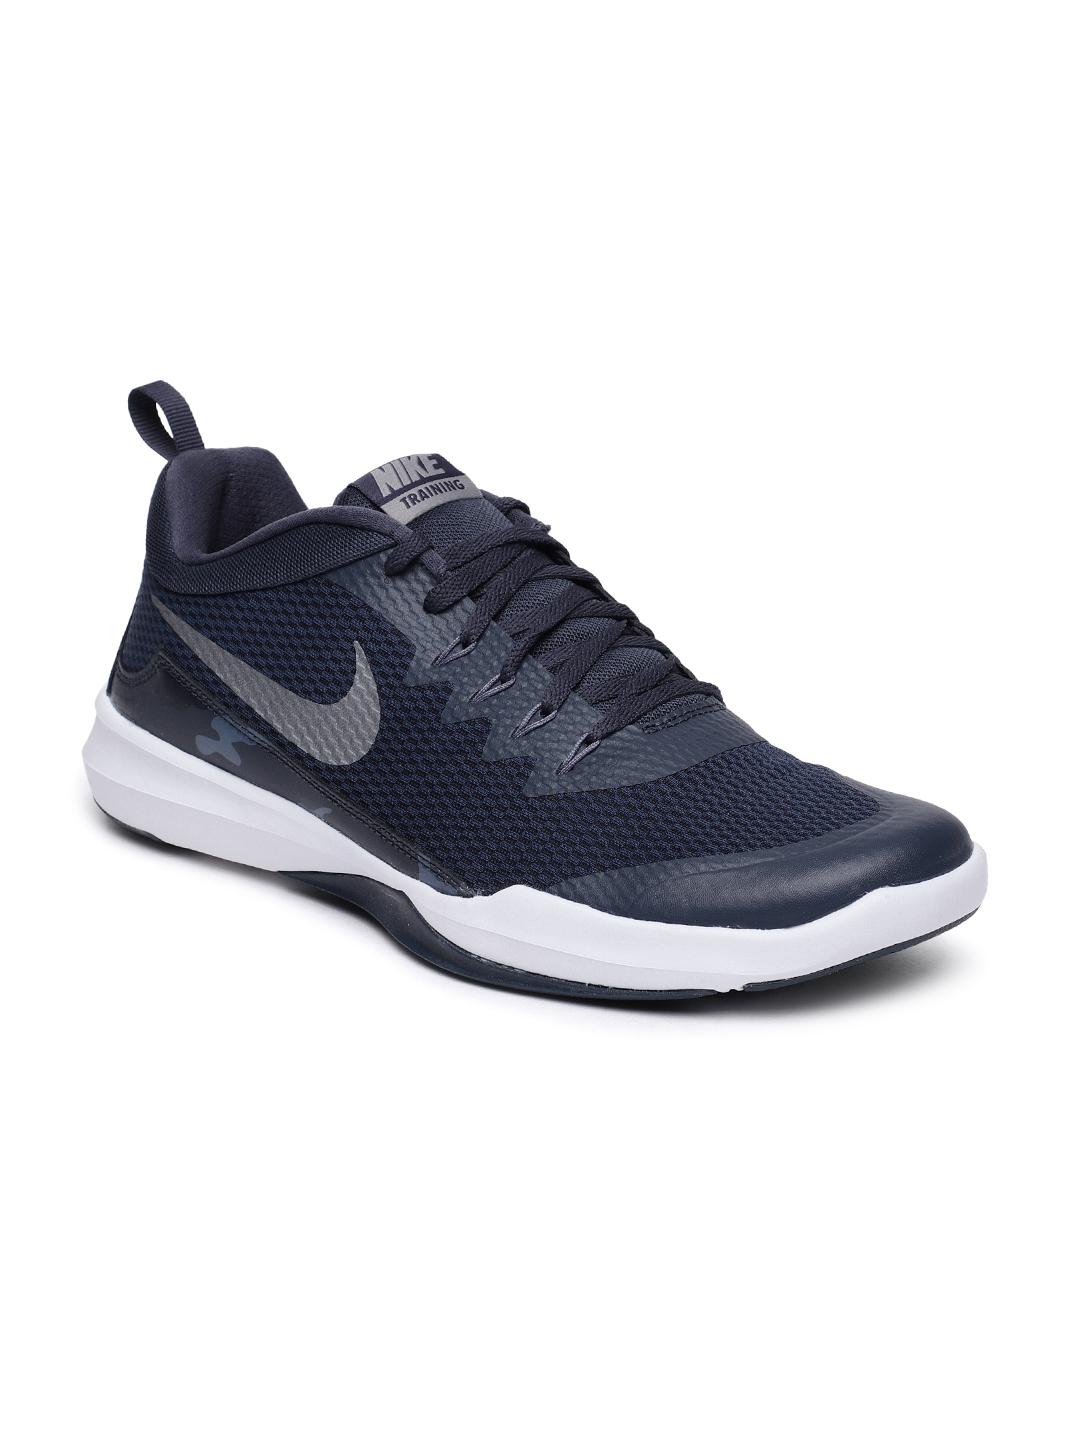 9cc4ef1bc4f9e Buy Nike Men Navy Legend Trainer Shoes - Sports Shoes for Men ...